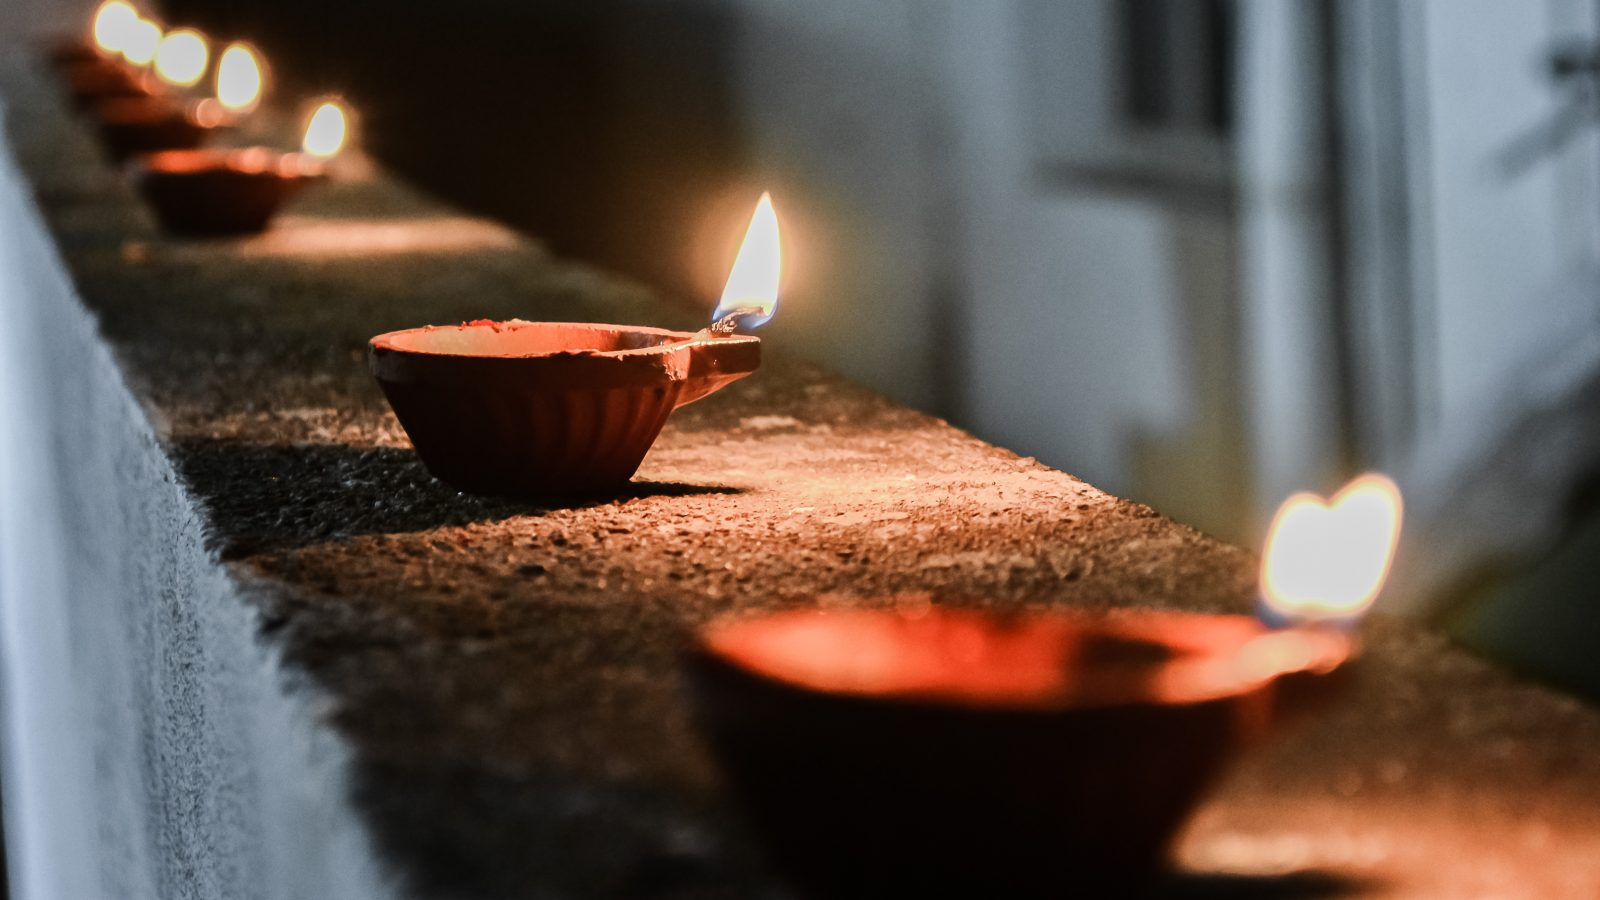 diya-lamp-deeepavali-celebration